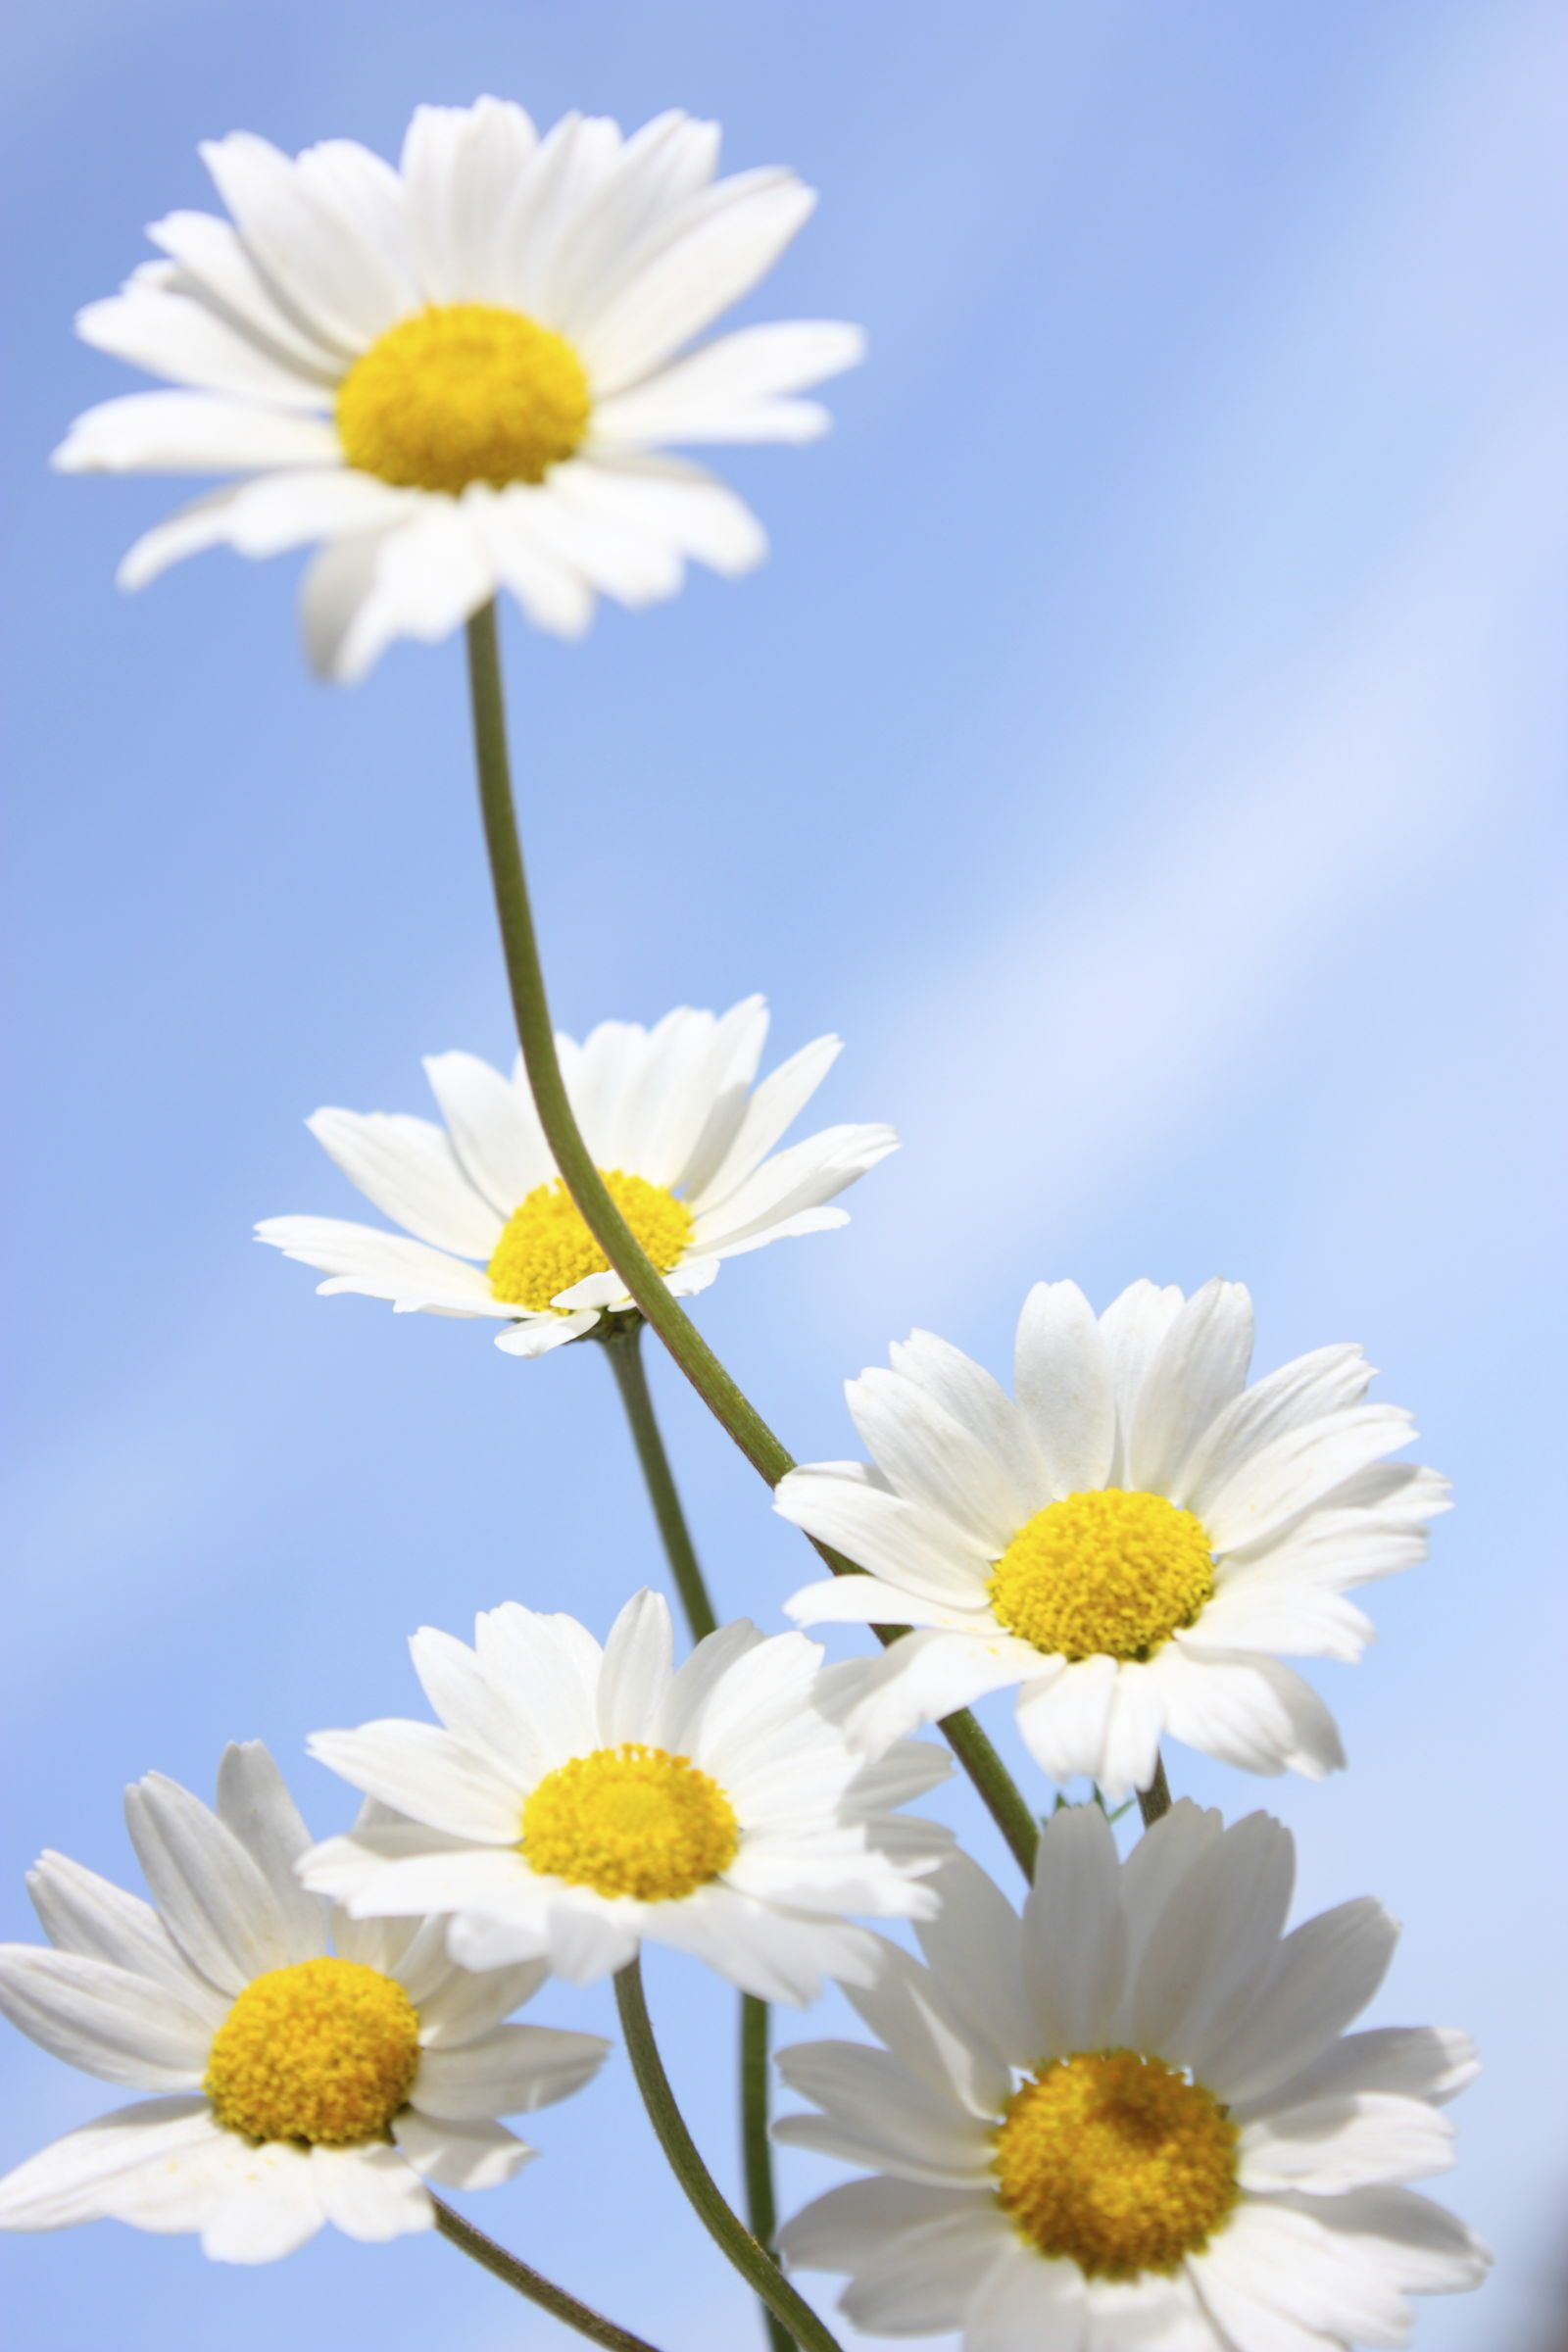 10 delightful things you didnt know about daisies flowers daisy comes from the old english daes eage meaning days eye the name refers to the way they close their petals in the evening and open again at dawn izmirmasajfo